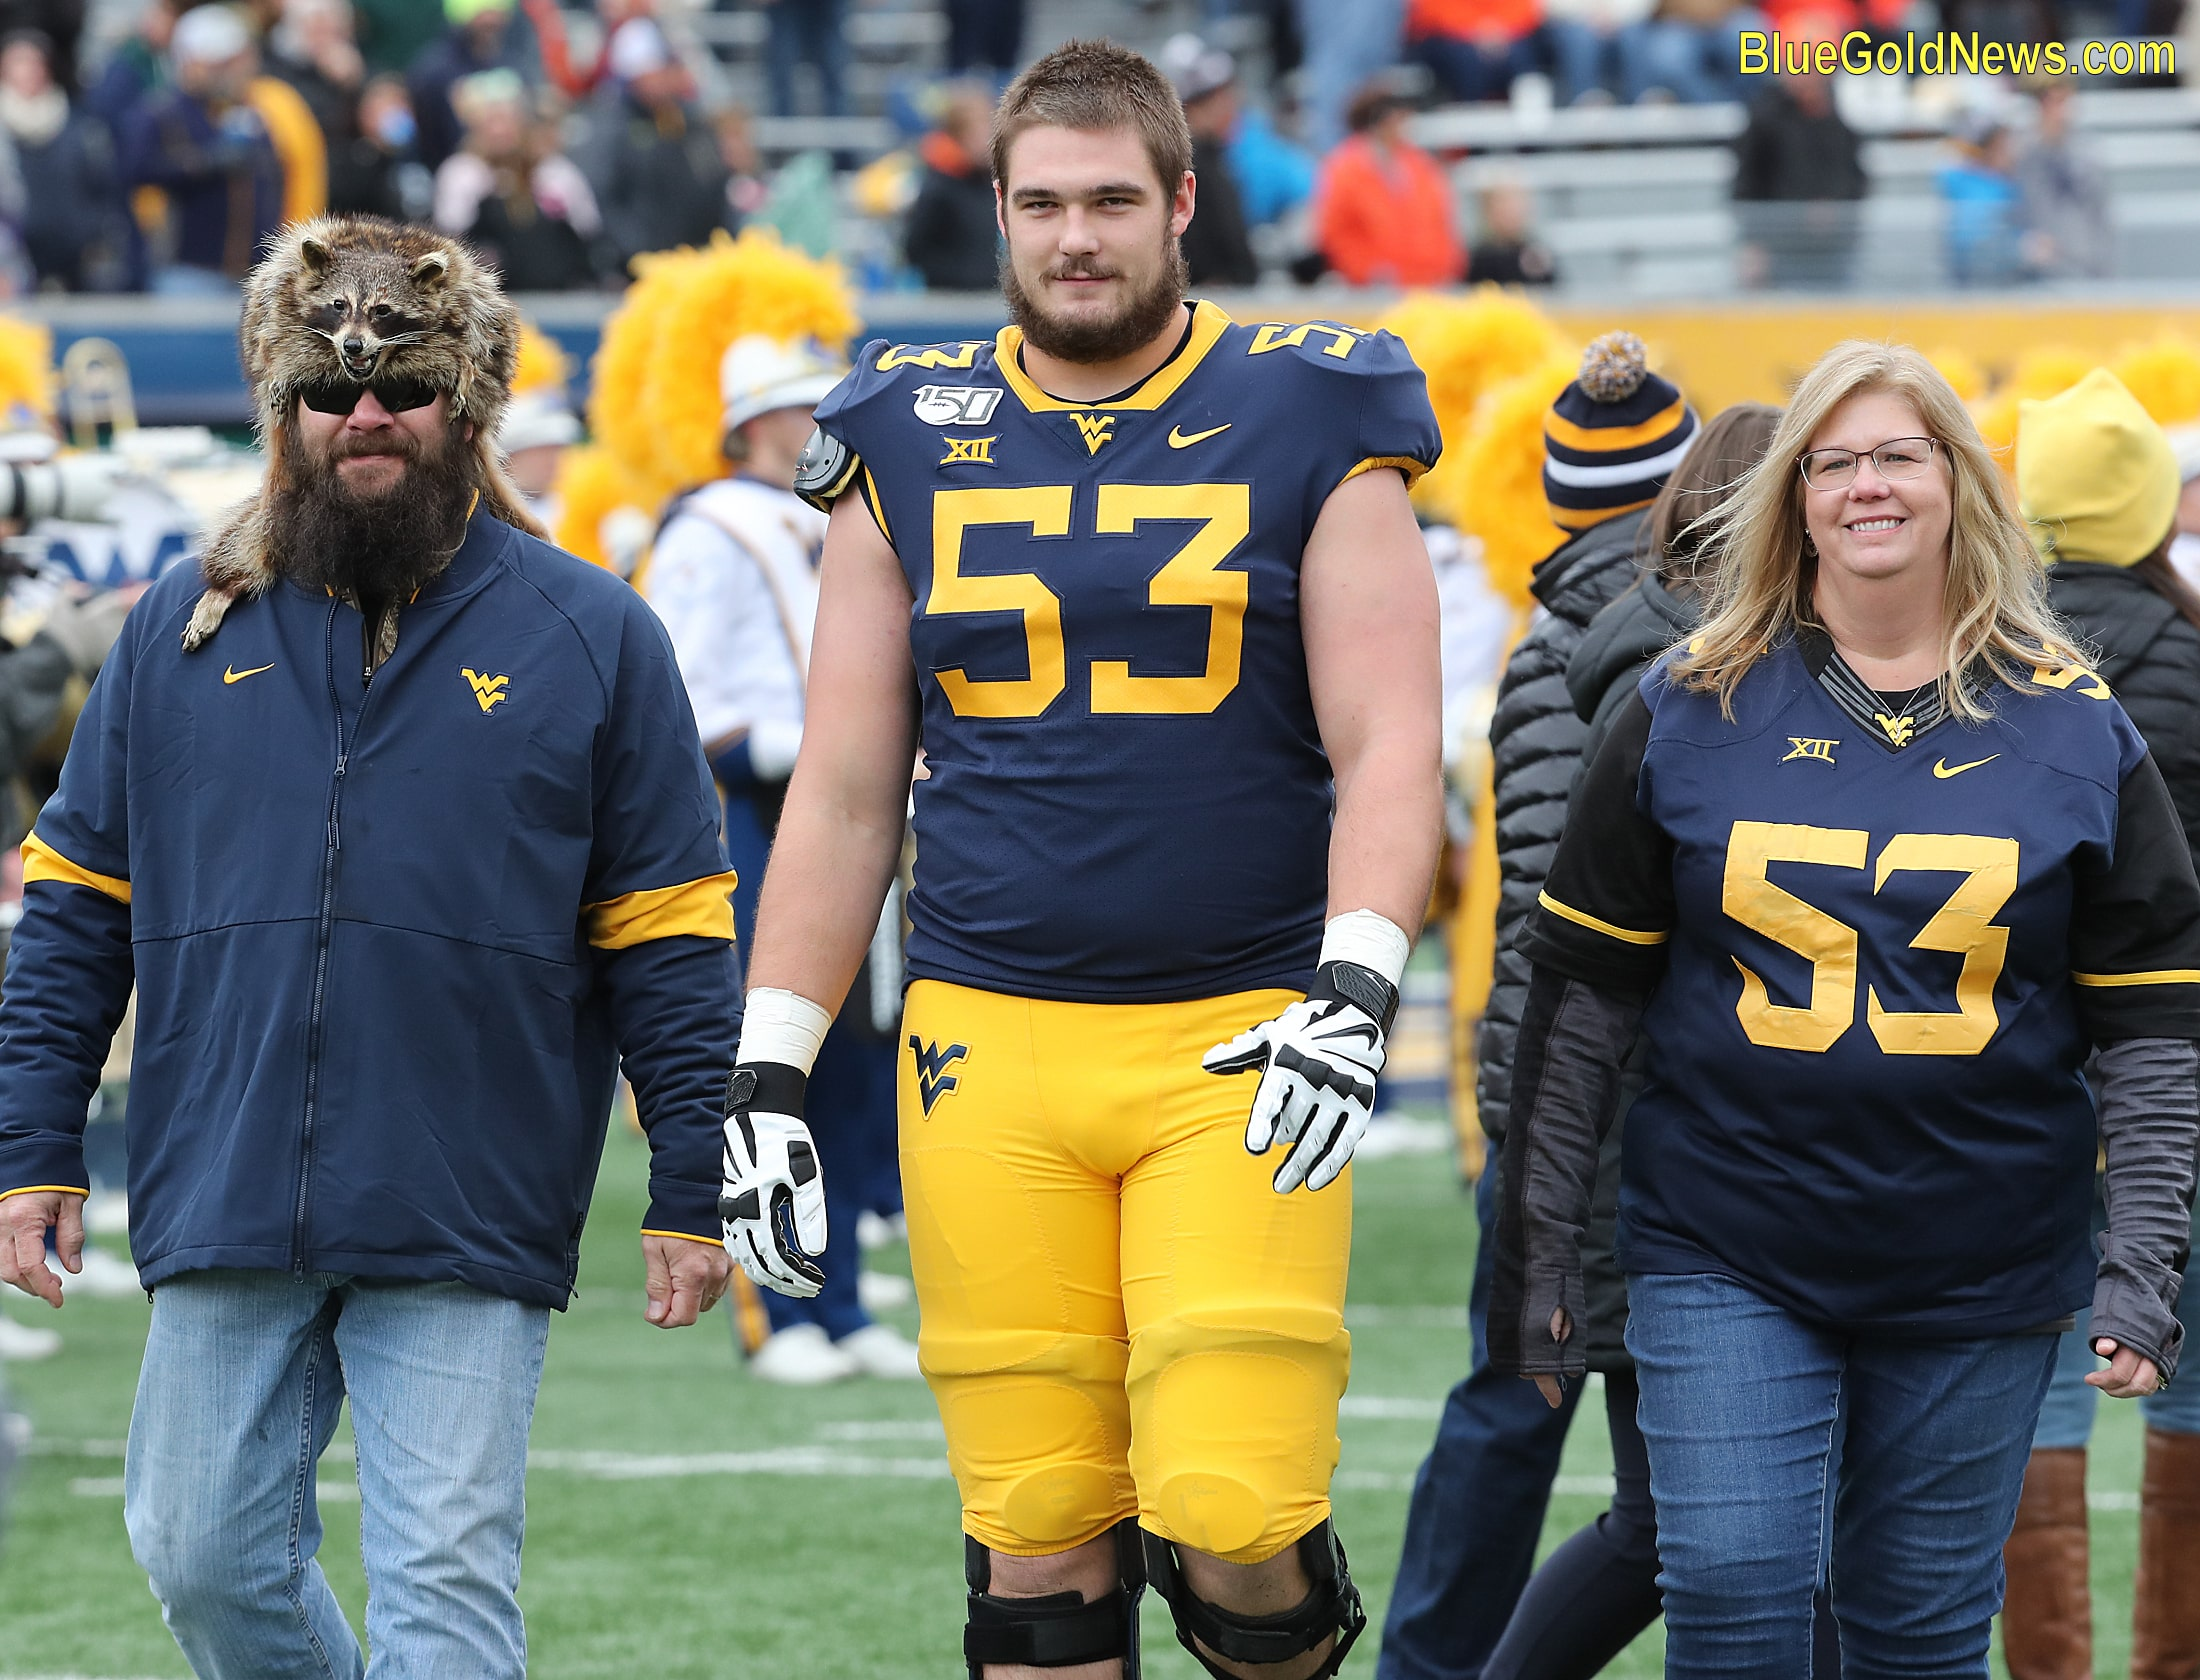 West Virginia seior Colton McKivitz and parents